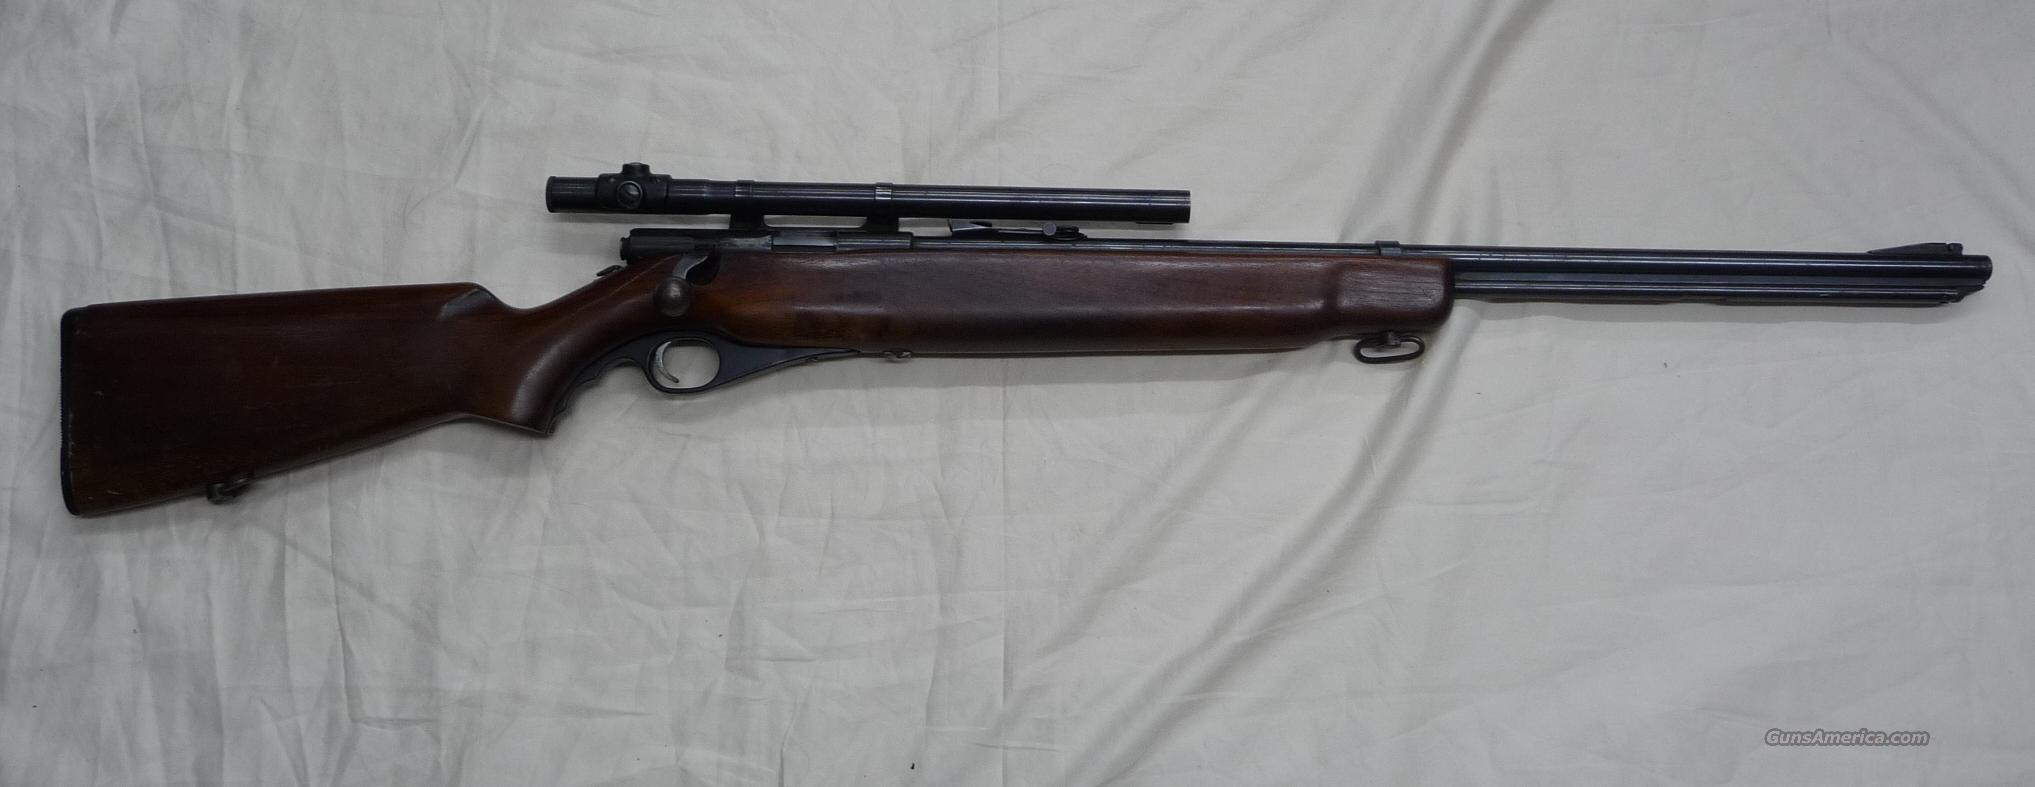 Wards Western Field 04M 491A .22  Guns > Rifles > Mossberg Rifles > Other Bolt Action